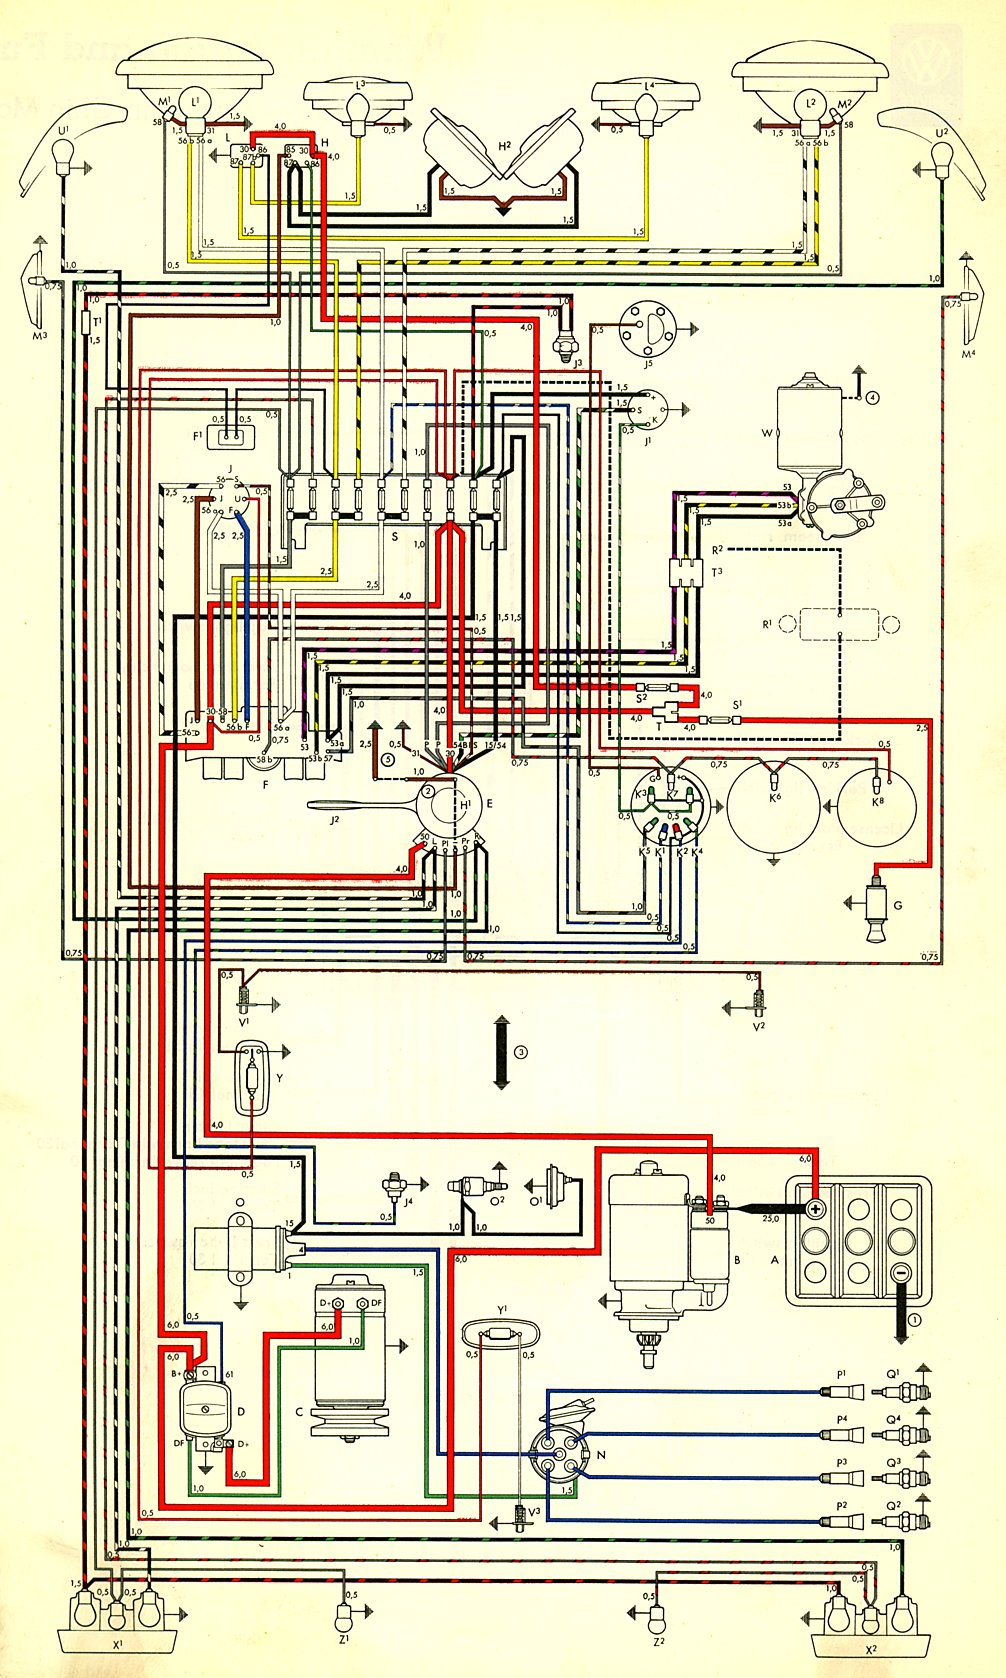 ebp2 wiring diagram auto coil wiring diagram thesamba.com :: type 3 wiring diagrams